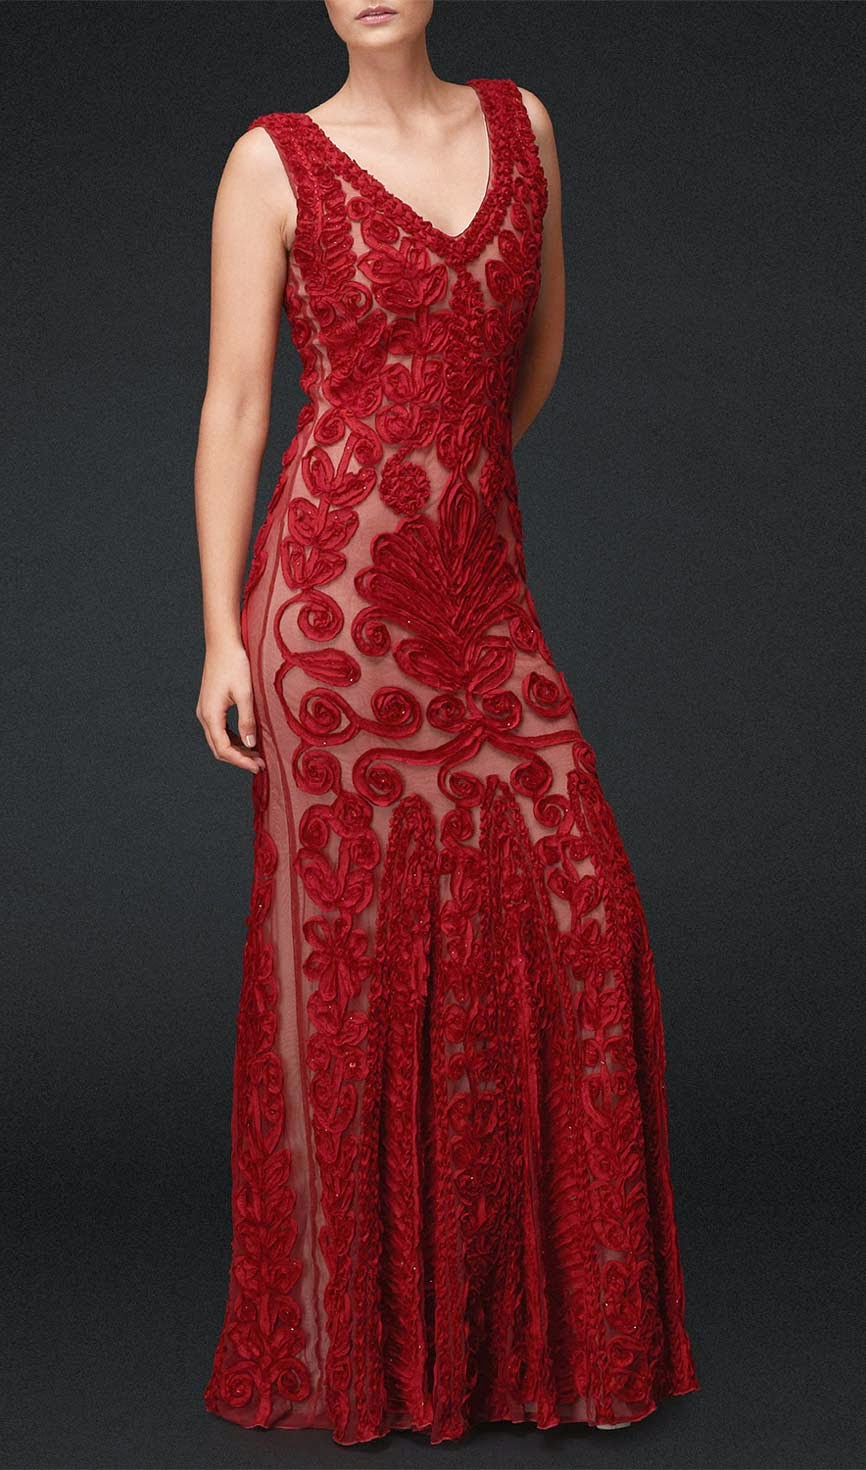 Beautiful Red Lace Wedding Dresses Photos HD Design Ideas